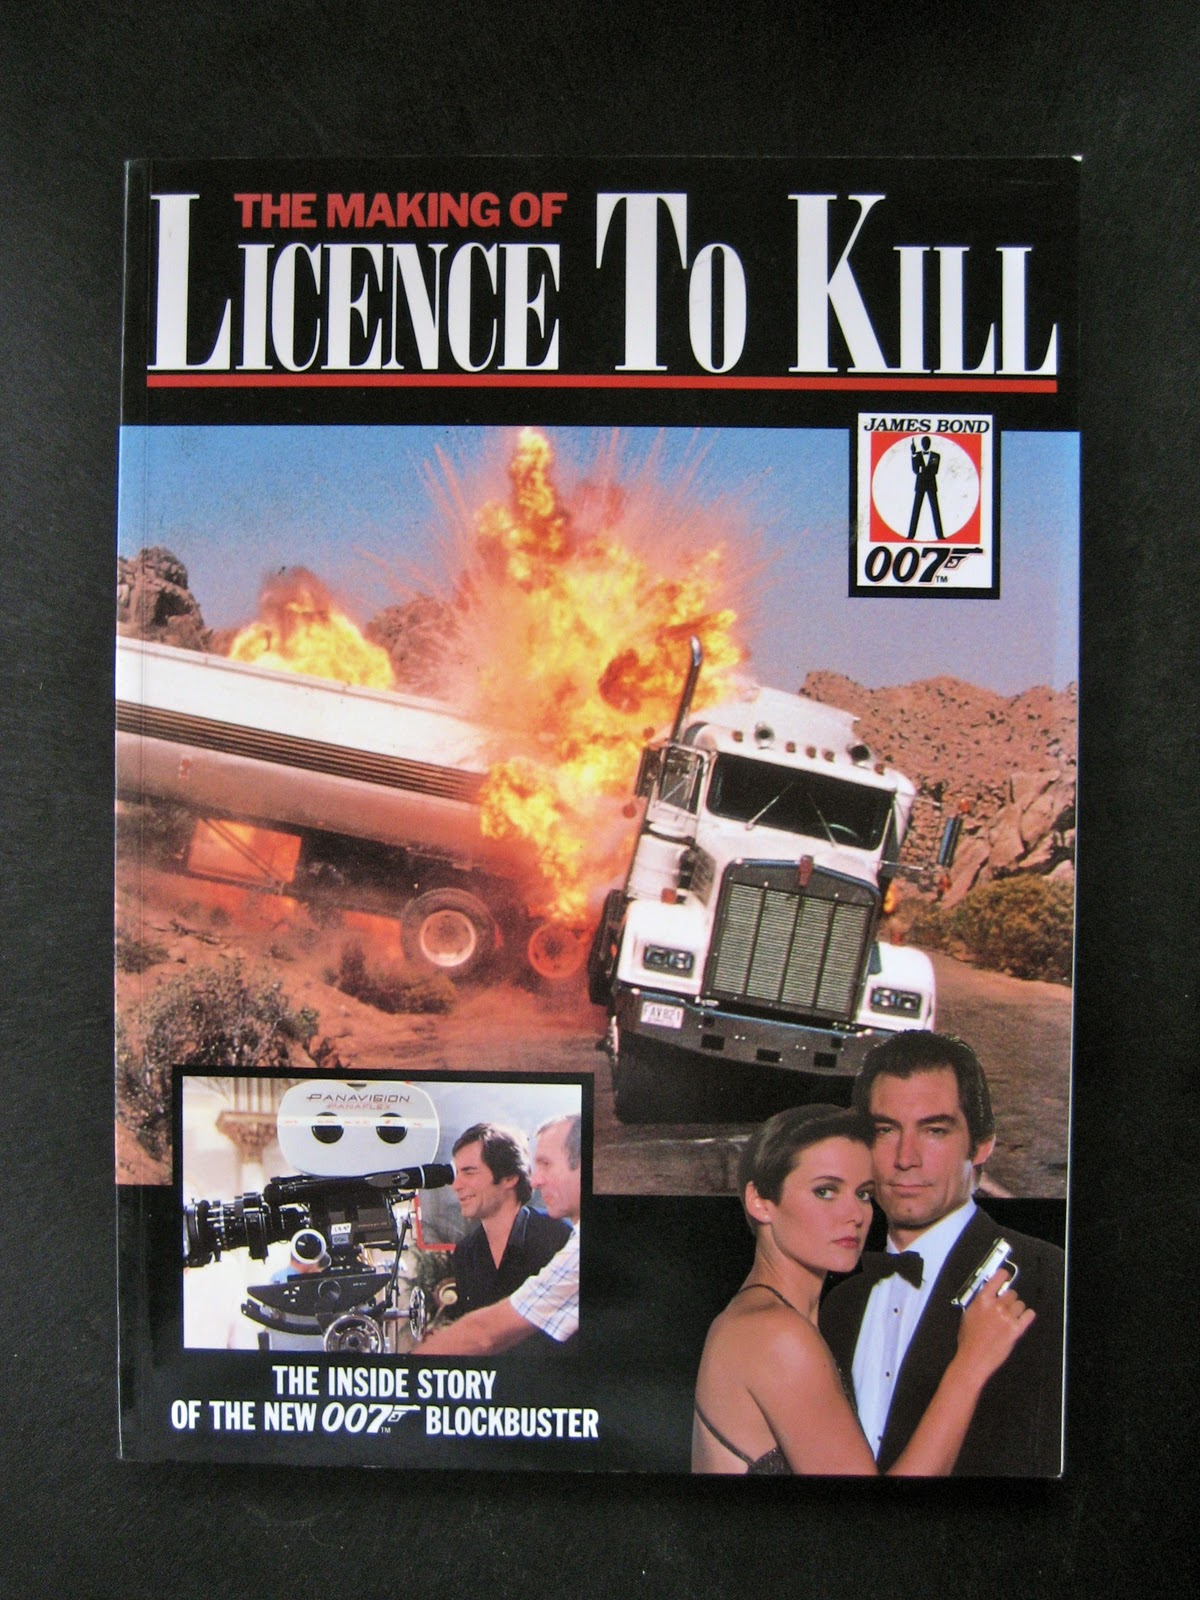 licence to kill Directed by john glen with timothy dalton, robert davi, carey lowell, talisa soto james bond goes rogue and sets off to unleash vengeance on a drug lord who tortured his best friend, a cia agent, and left him for dead and murdered his bride after he helped capture him.